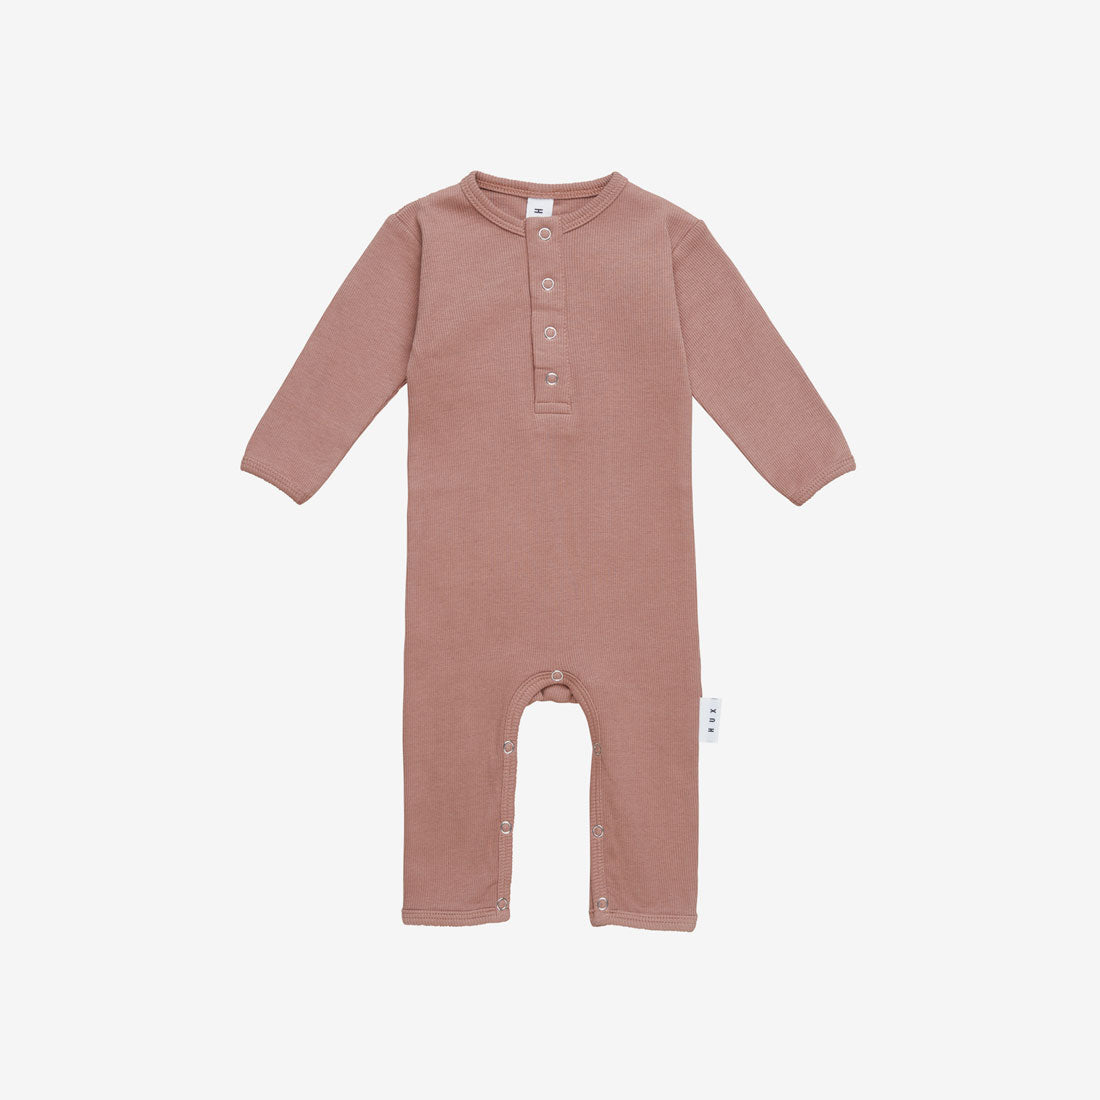 Organic Essentials Rib Romper - Ginger